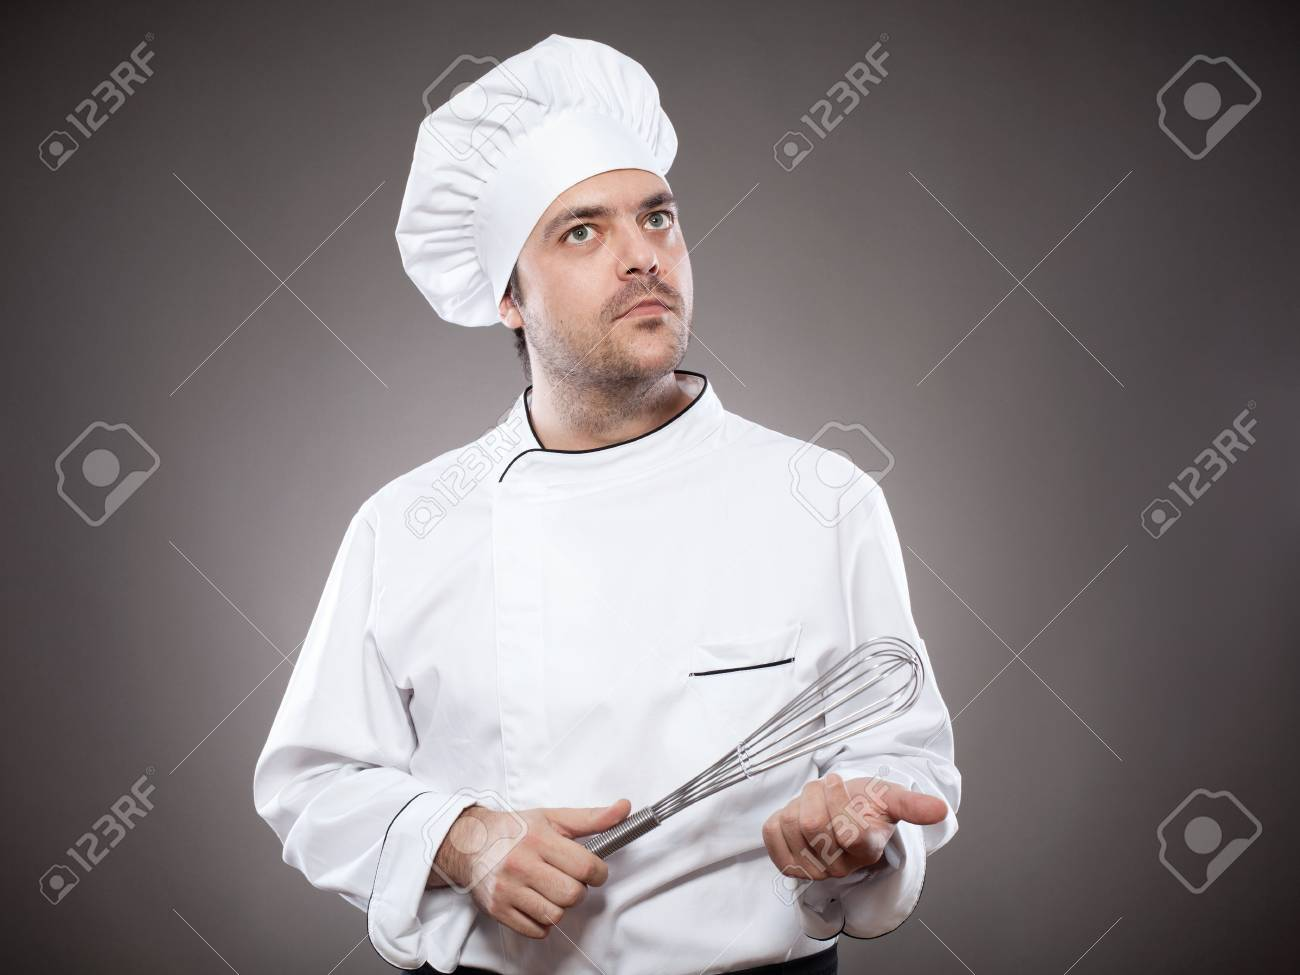 Chef with whick looking up against grey background Stock Photo - 15985411